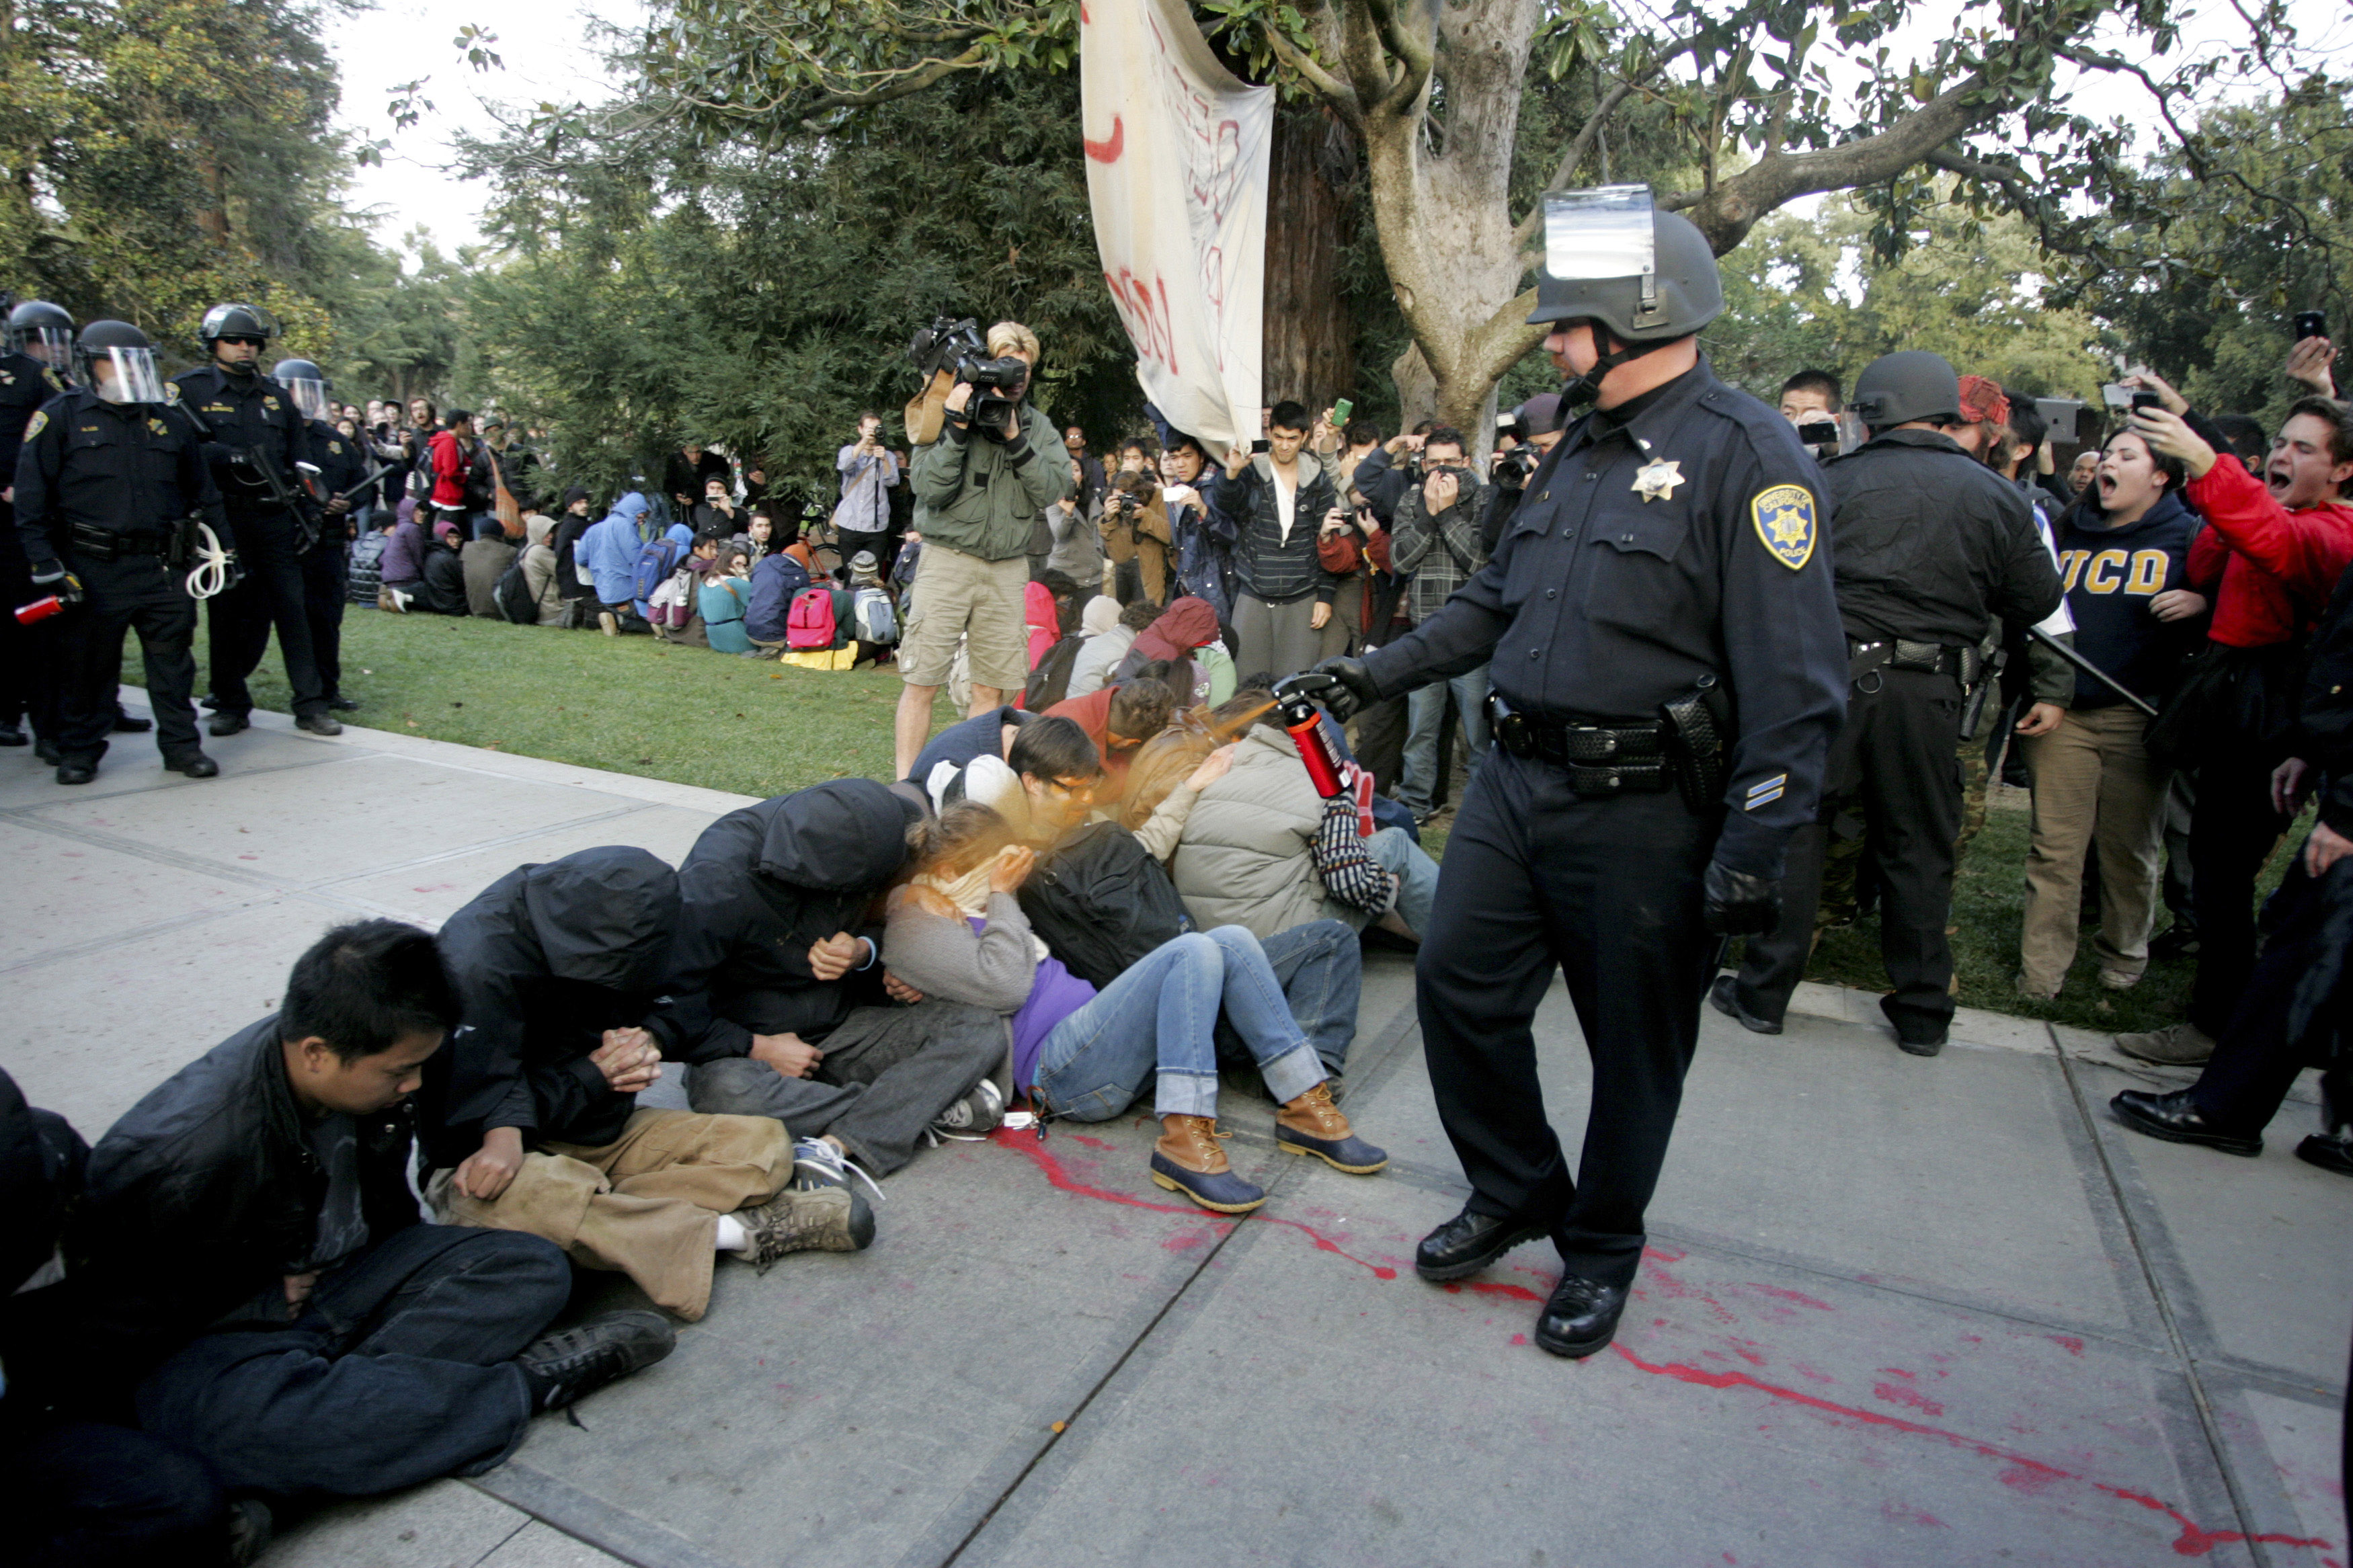 A University of California Davis police officer pepper-sprays students during their sit-in at an  Occupy UCD  demonstration in Davis, Calif. on Nov. 18, 2011.